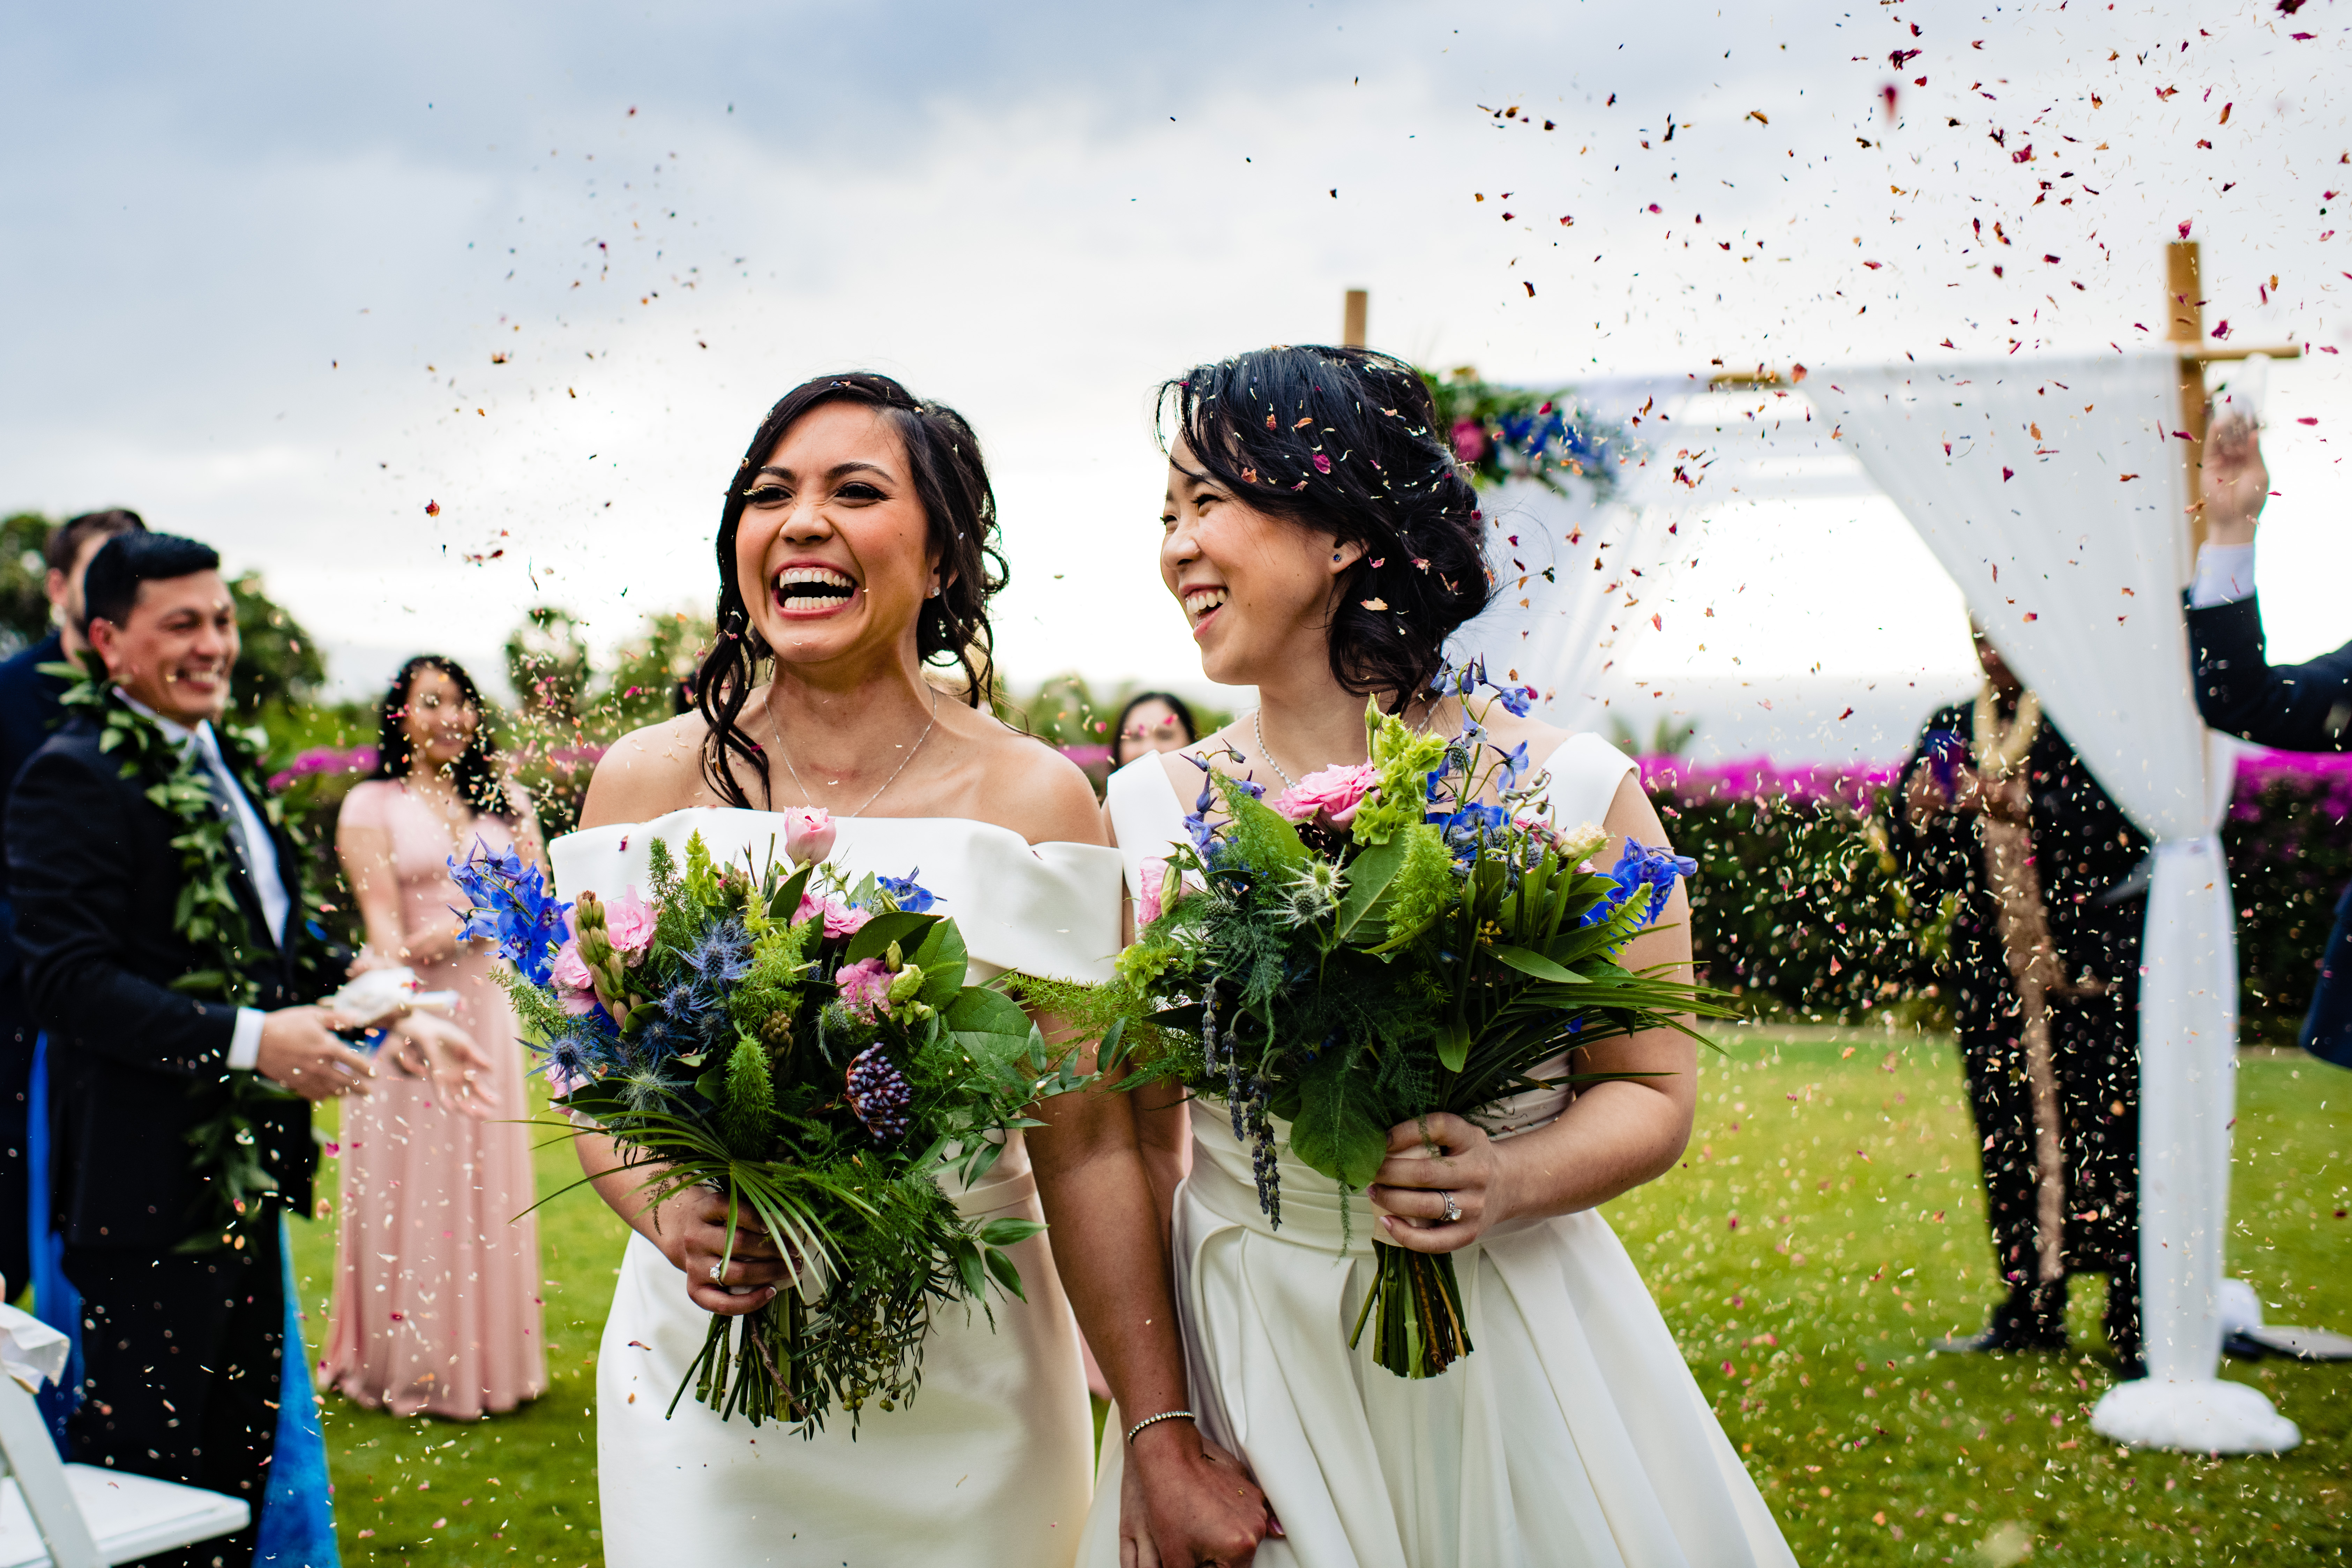 Just married brides laughing as they leave their ceremony - Angela Nelson, Maui